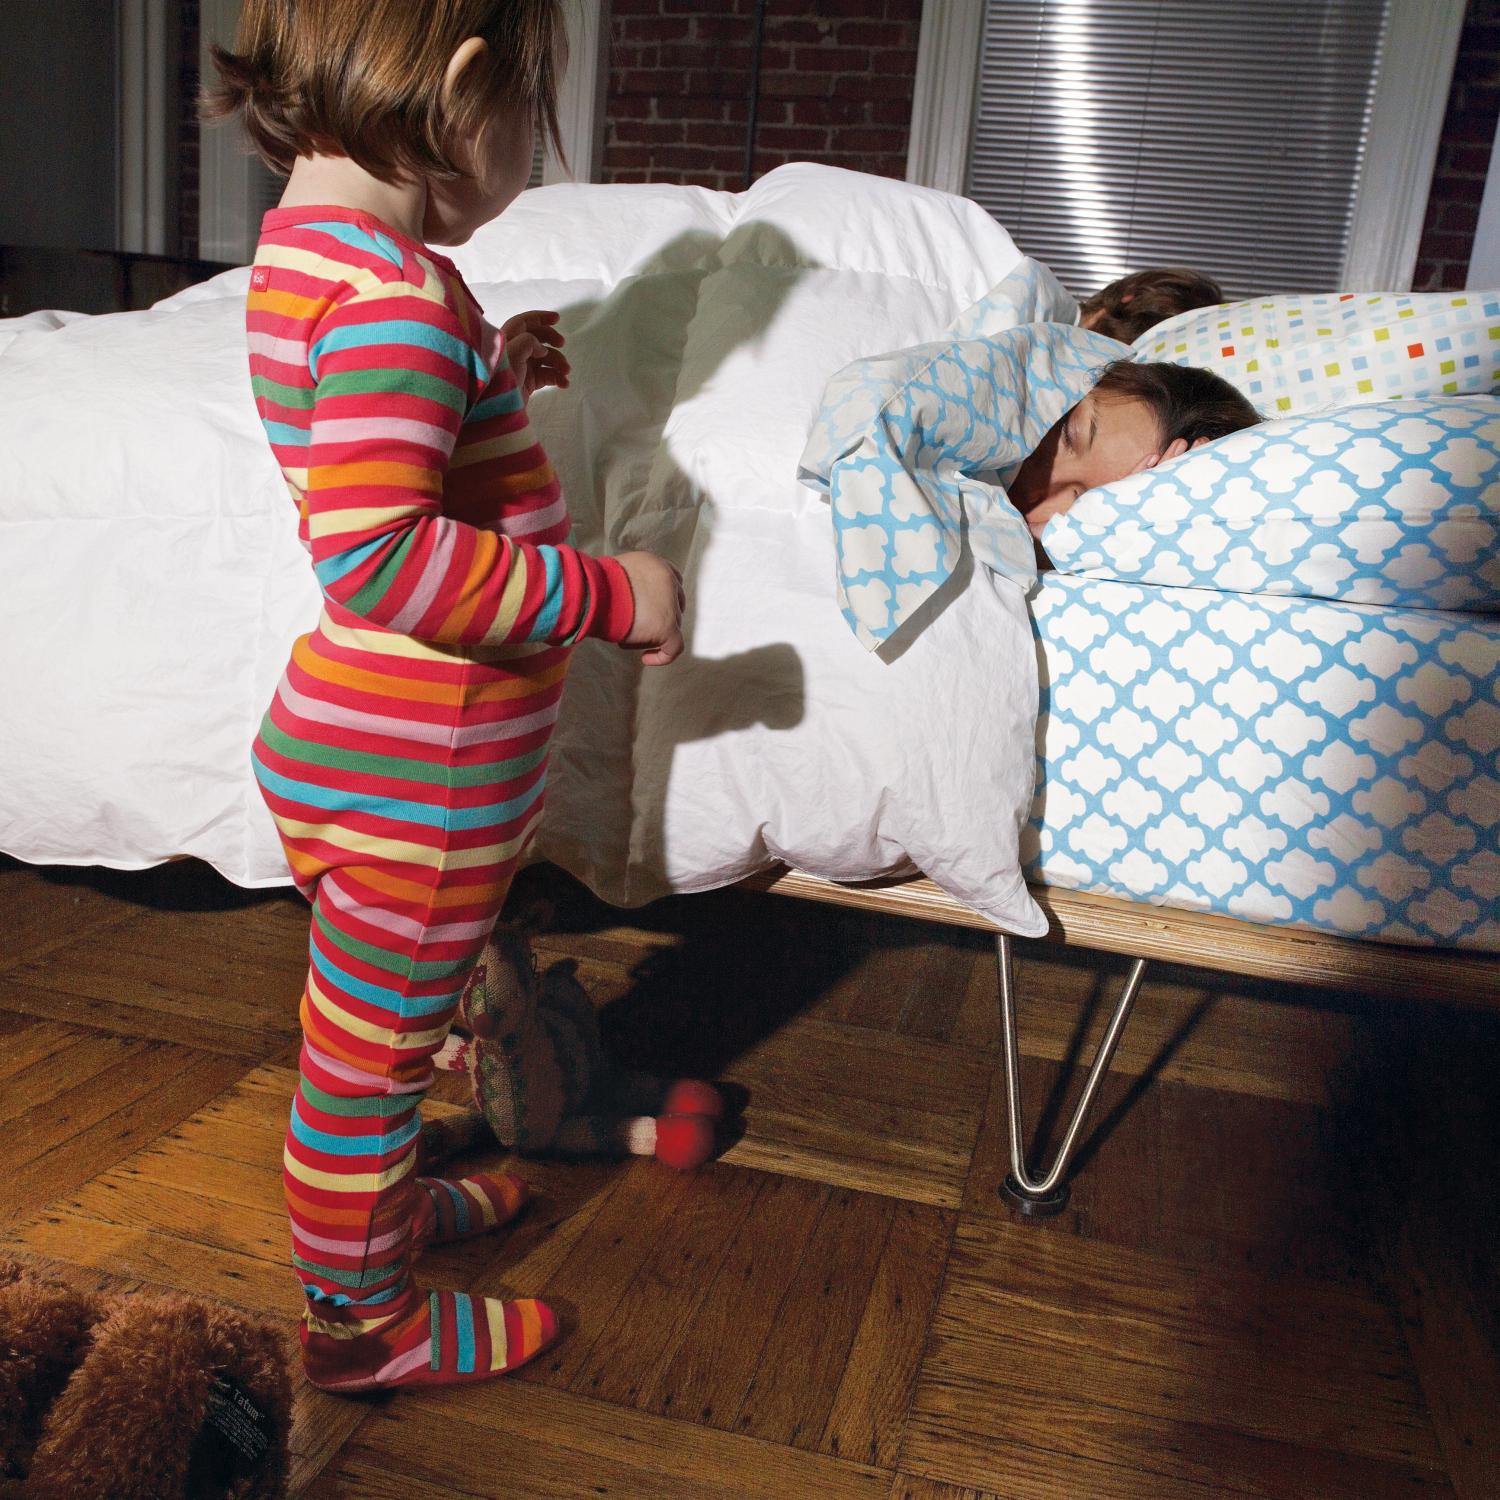 My Parents Bedroom: How To Get Your Kid To Sleep In Her Own Bed